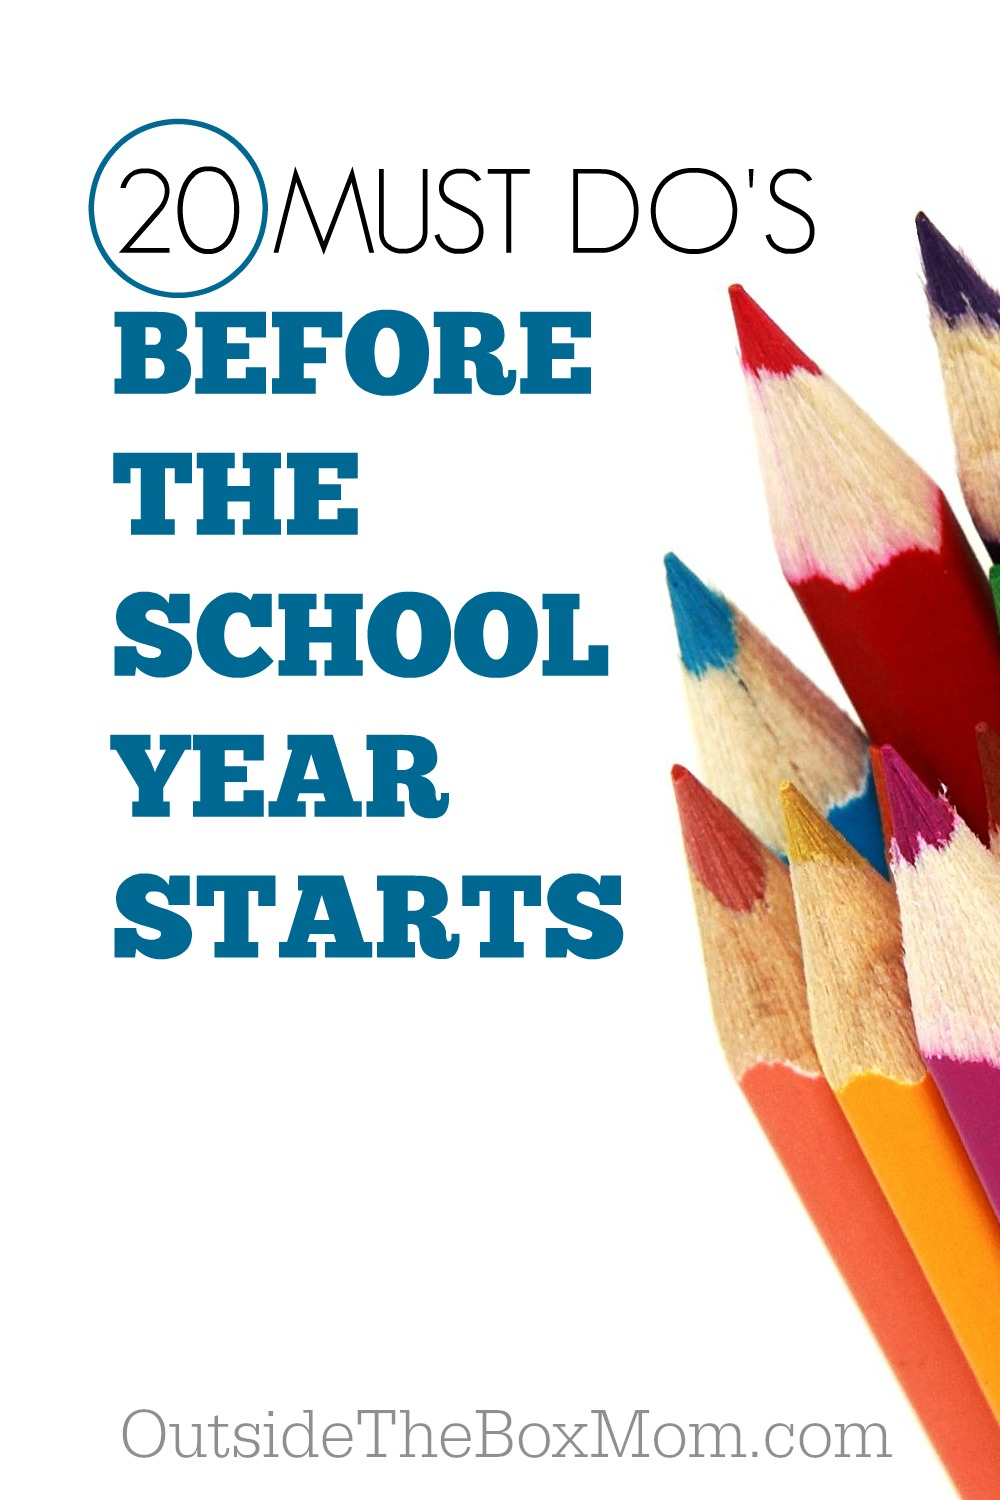 When the start of the school year is right around the corner, it can seem like the list never ends and there's not enough time. Here are some must do's to get the school year off to a smooth start.